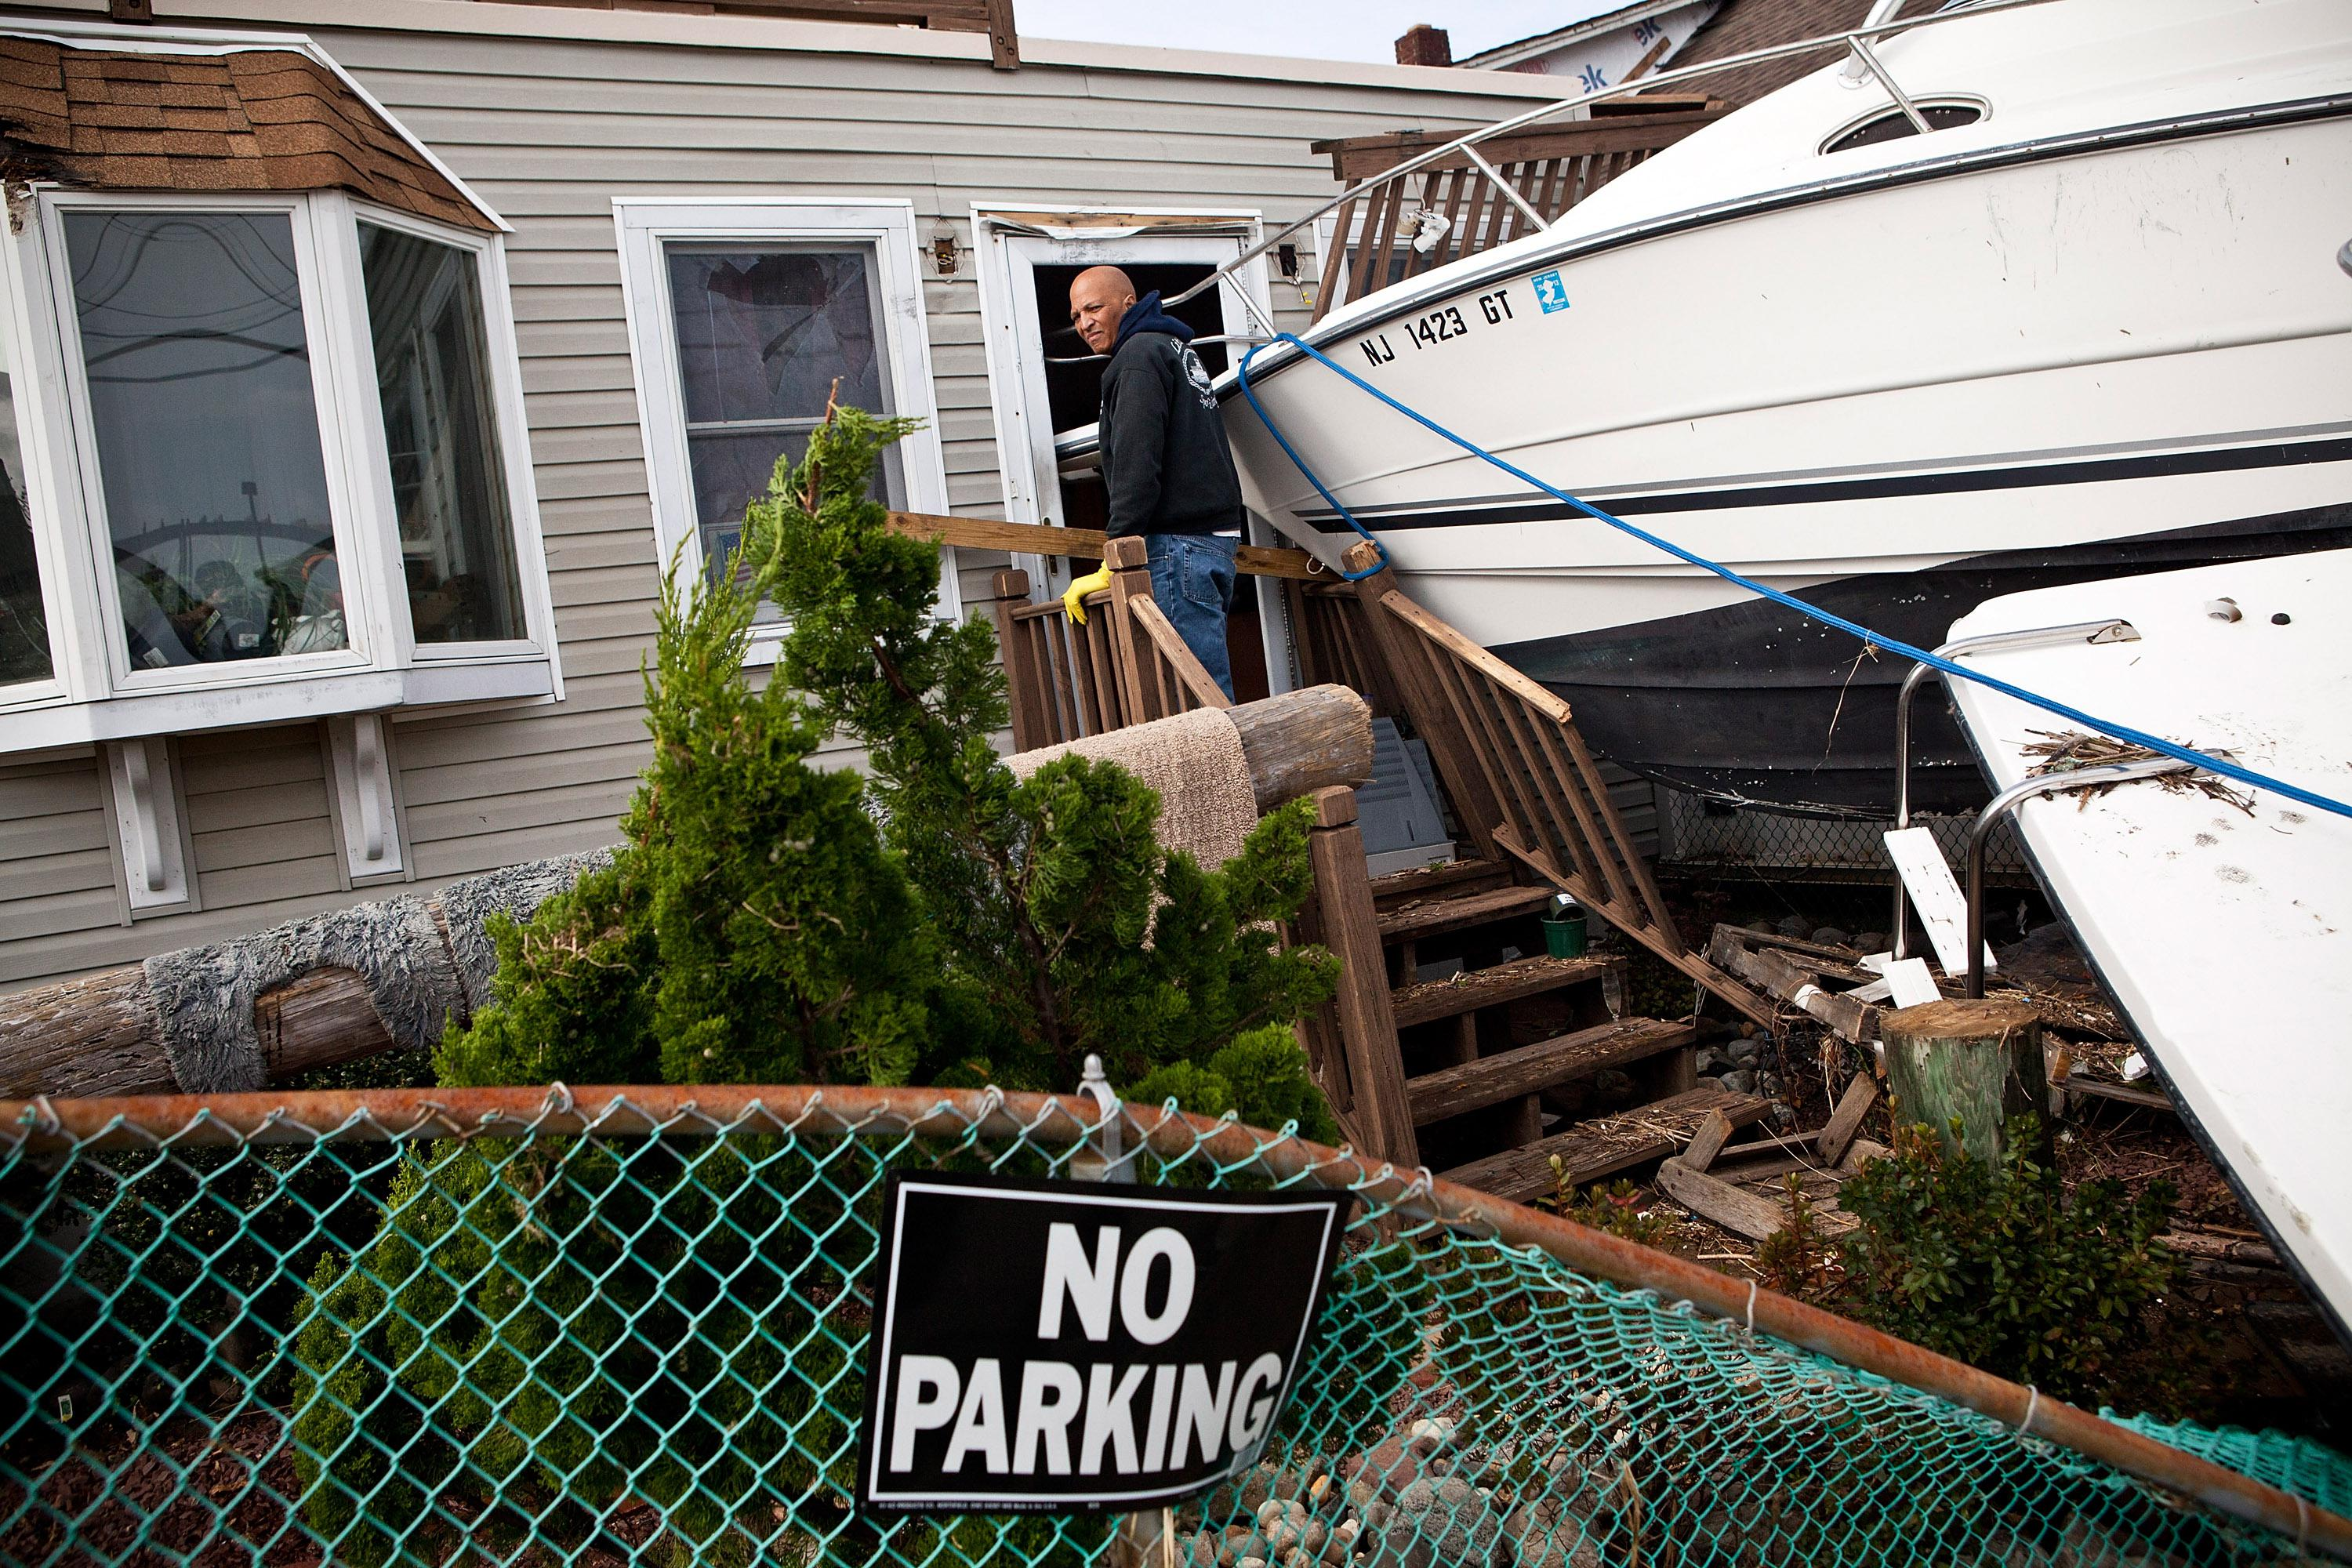 Clifford Seay helps his girlfriend, Regina Yahara-Splain, clean out her home, which was damaged by Superstorm Sandy, on November 1, 2012 in Highlands, New Jersey.